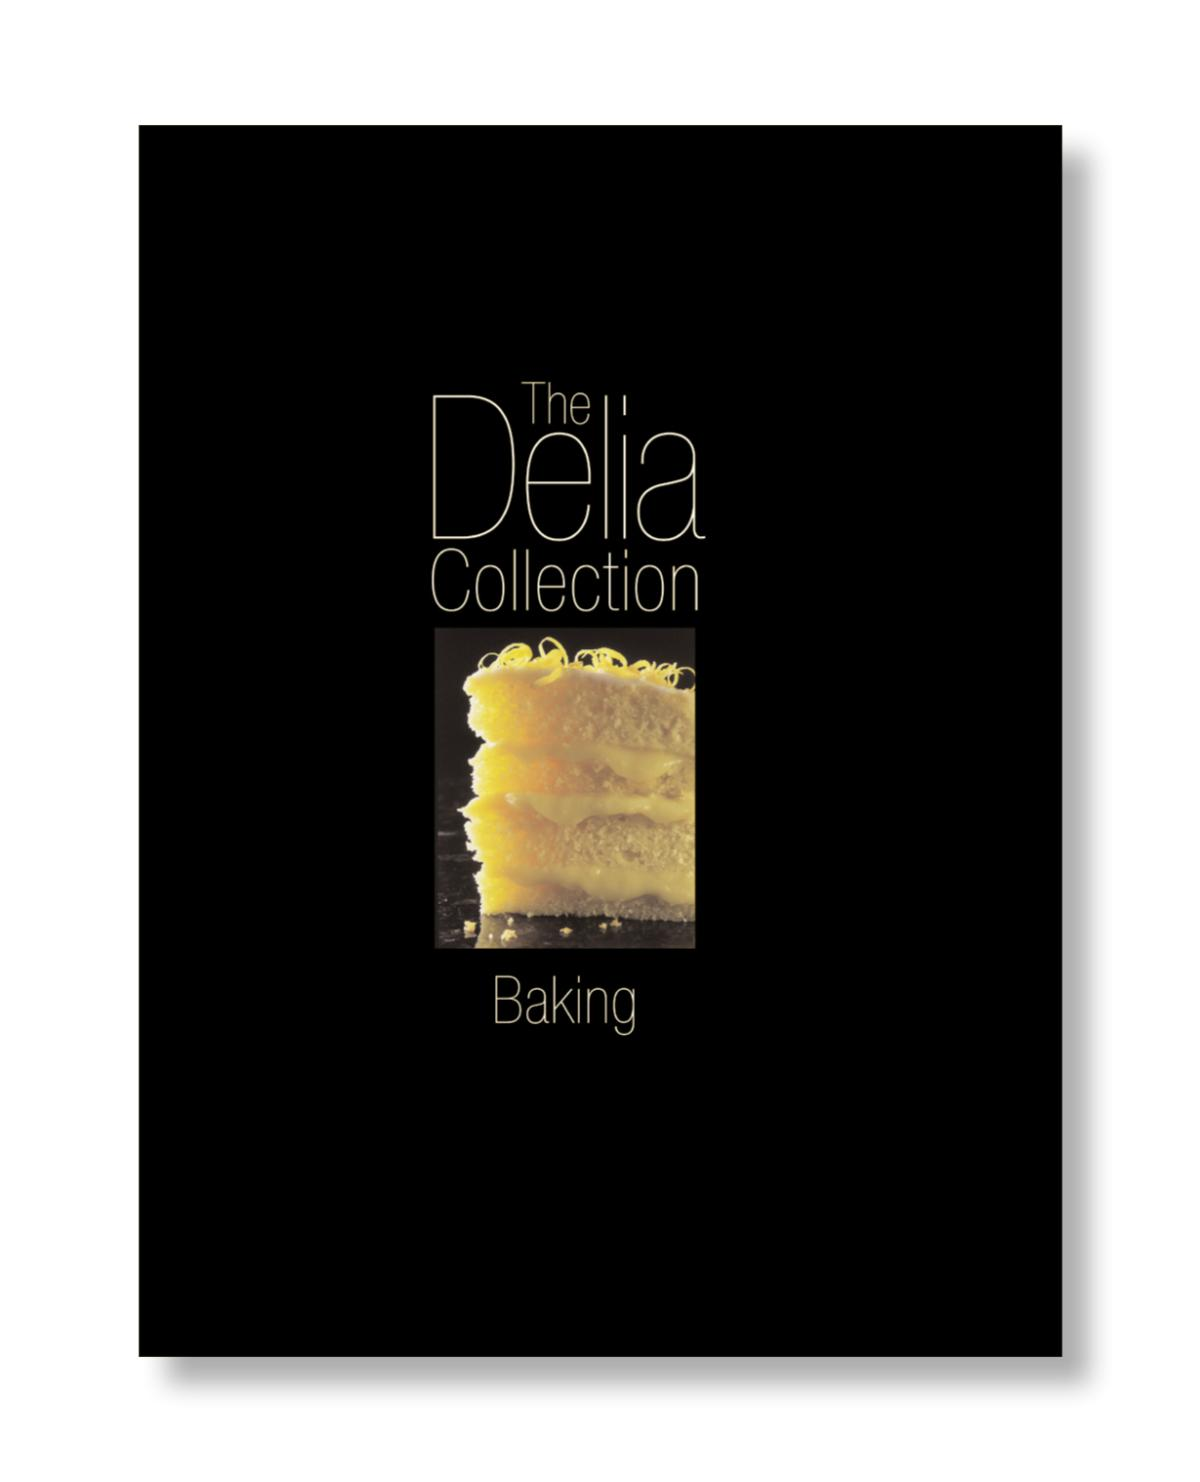 A picture of Delia's The Delia Collection: Baking recipes